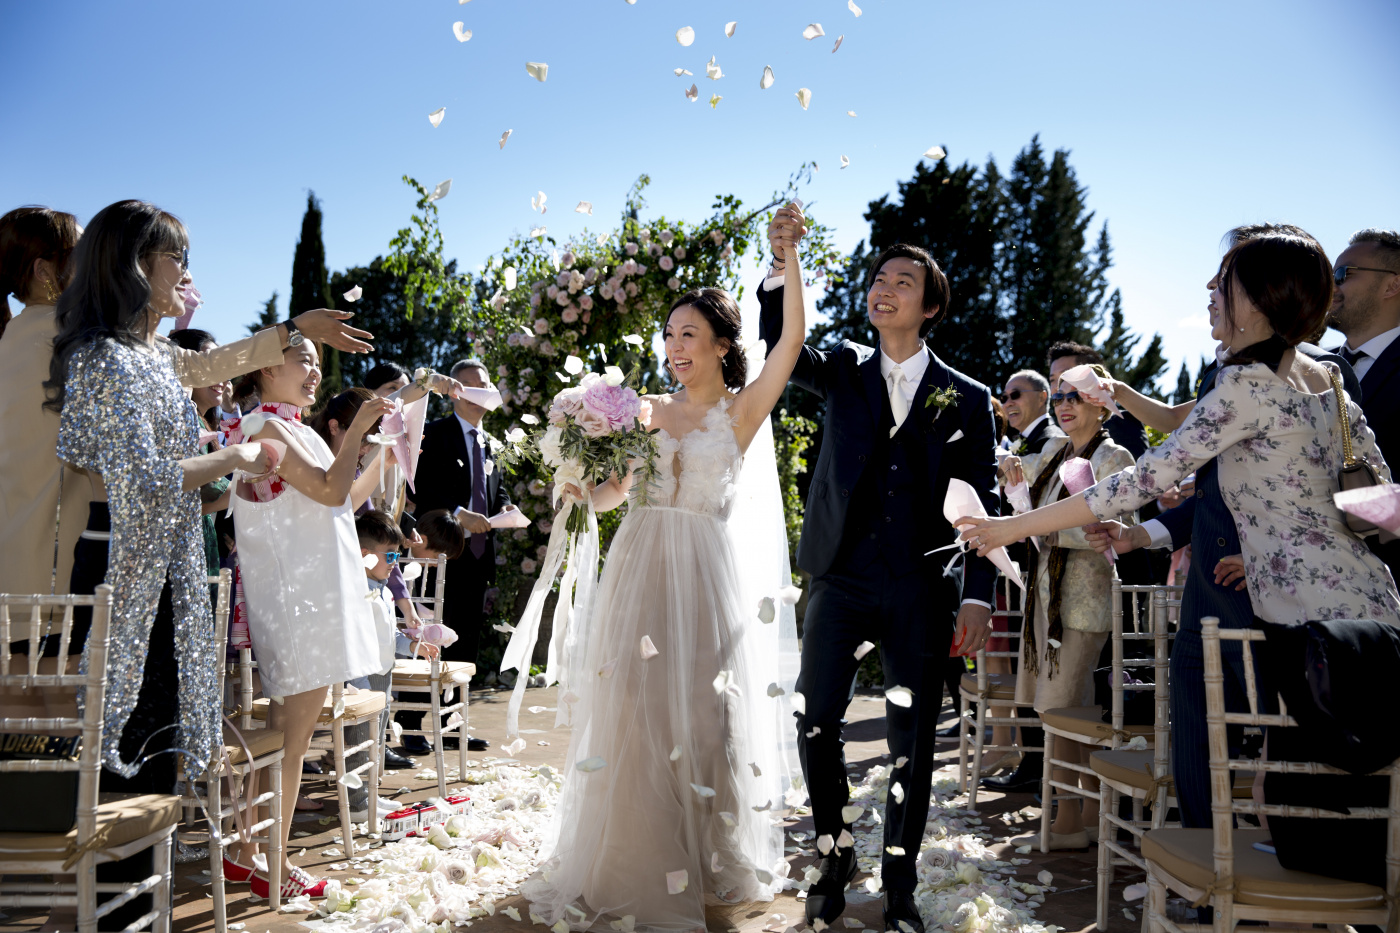 Bride and groom along the ceremony aisle with petals